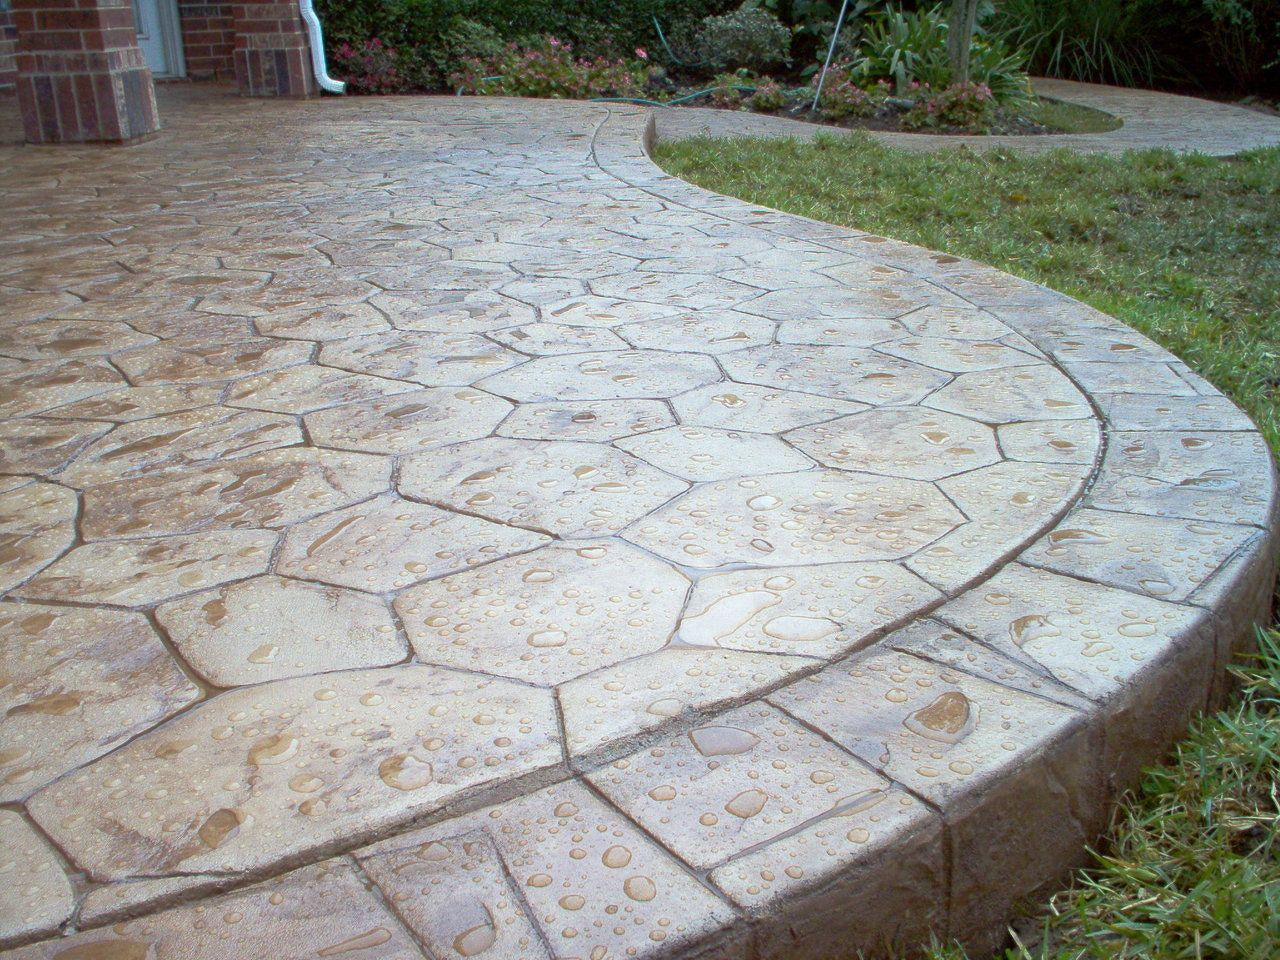 Decorative Patio Tiles Classy Patterncomplete Pool Tile Coping Diamond Brite And Deck Design Ideas